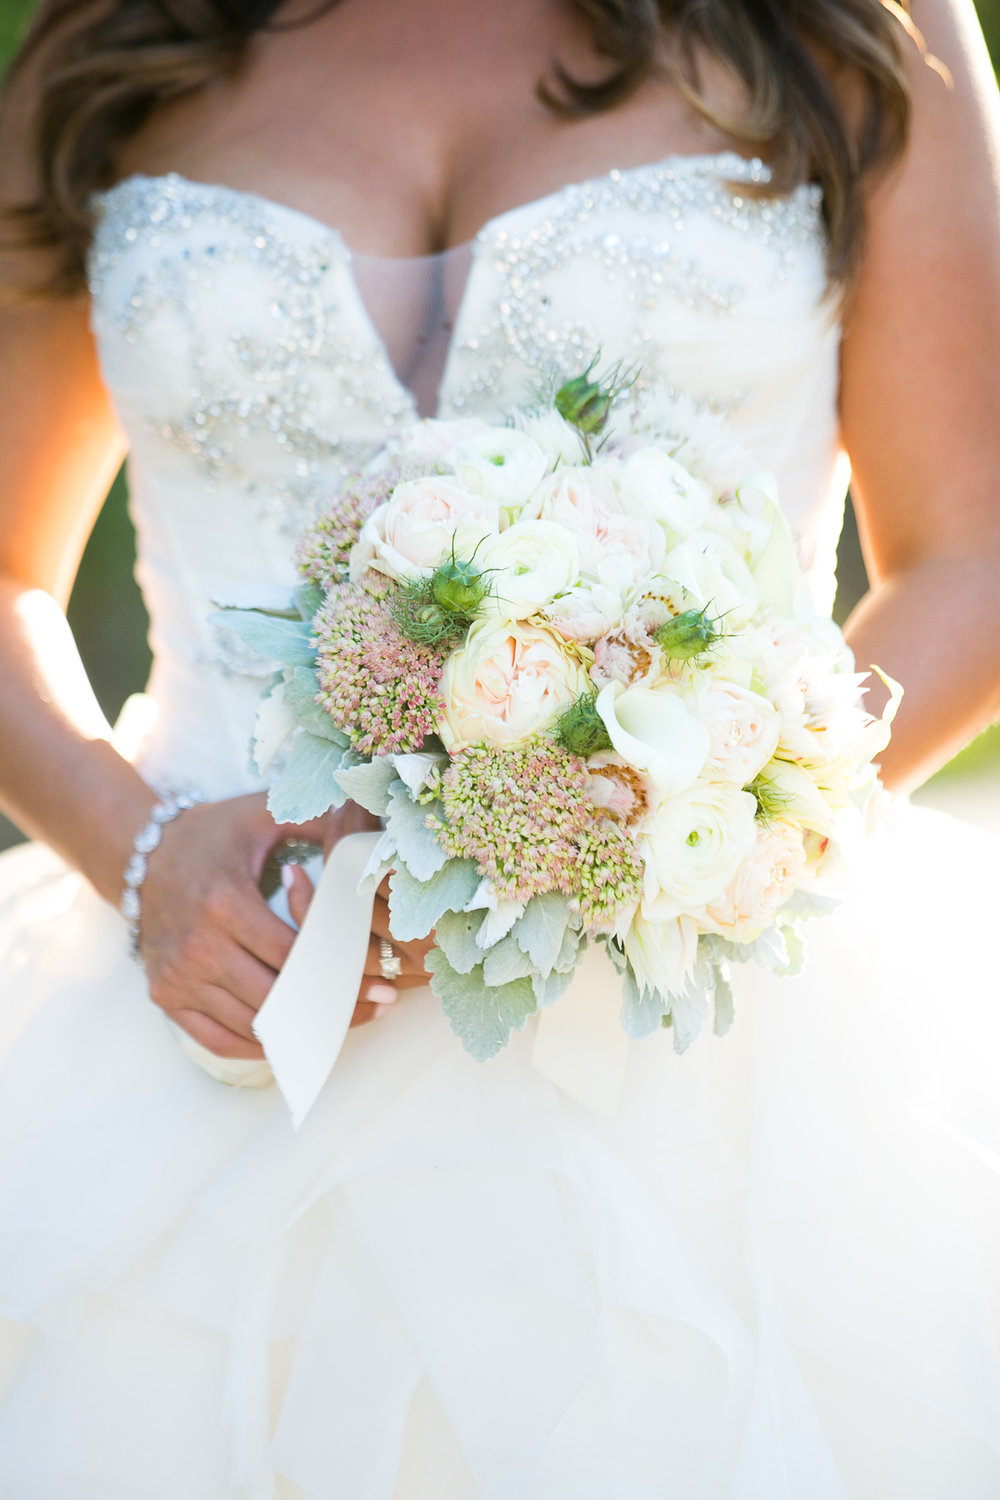 Dreamy Romantic Wedding at Historic Los Angeles Ebell Club bridal bouquet.jpg